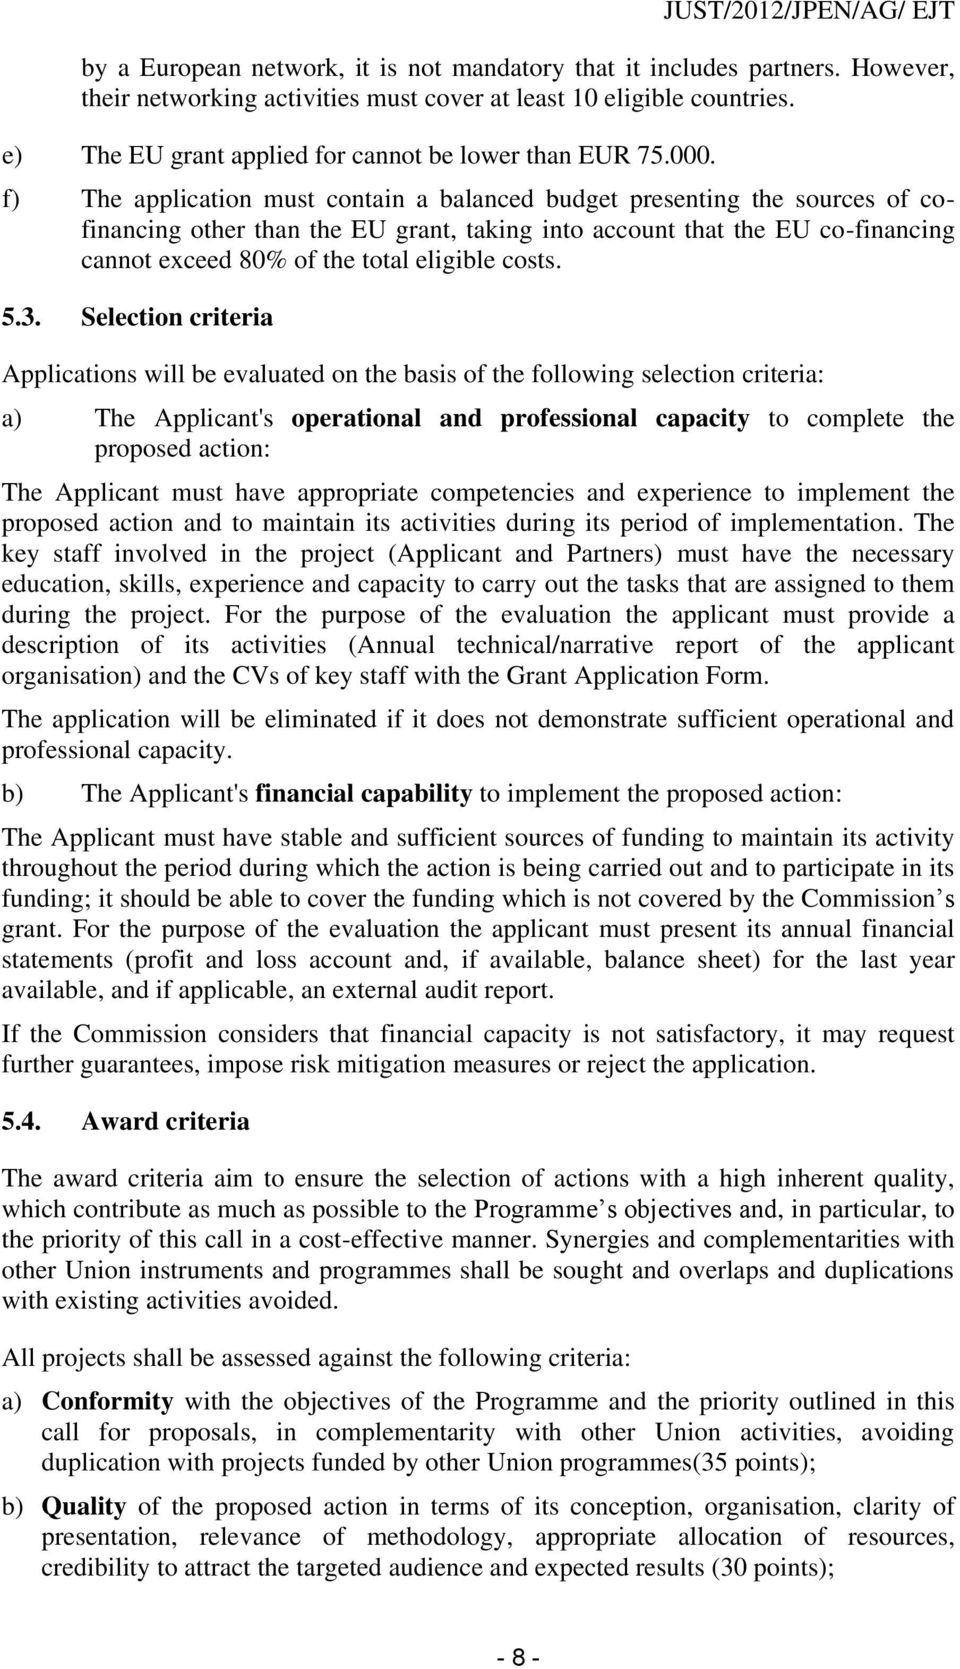 f) The application must contain a balanced budget presenting the sources of cofinancing other than the EU grant, taking into account that the EU co-financing cannot exceed 80% of the total eligible